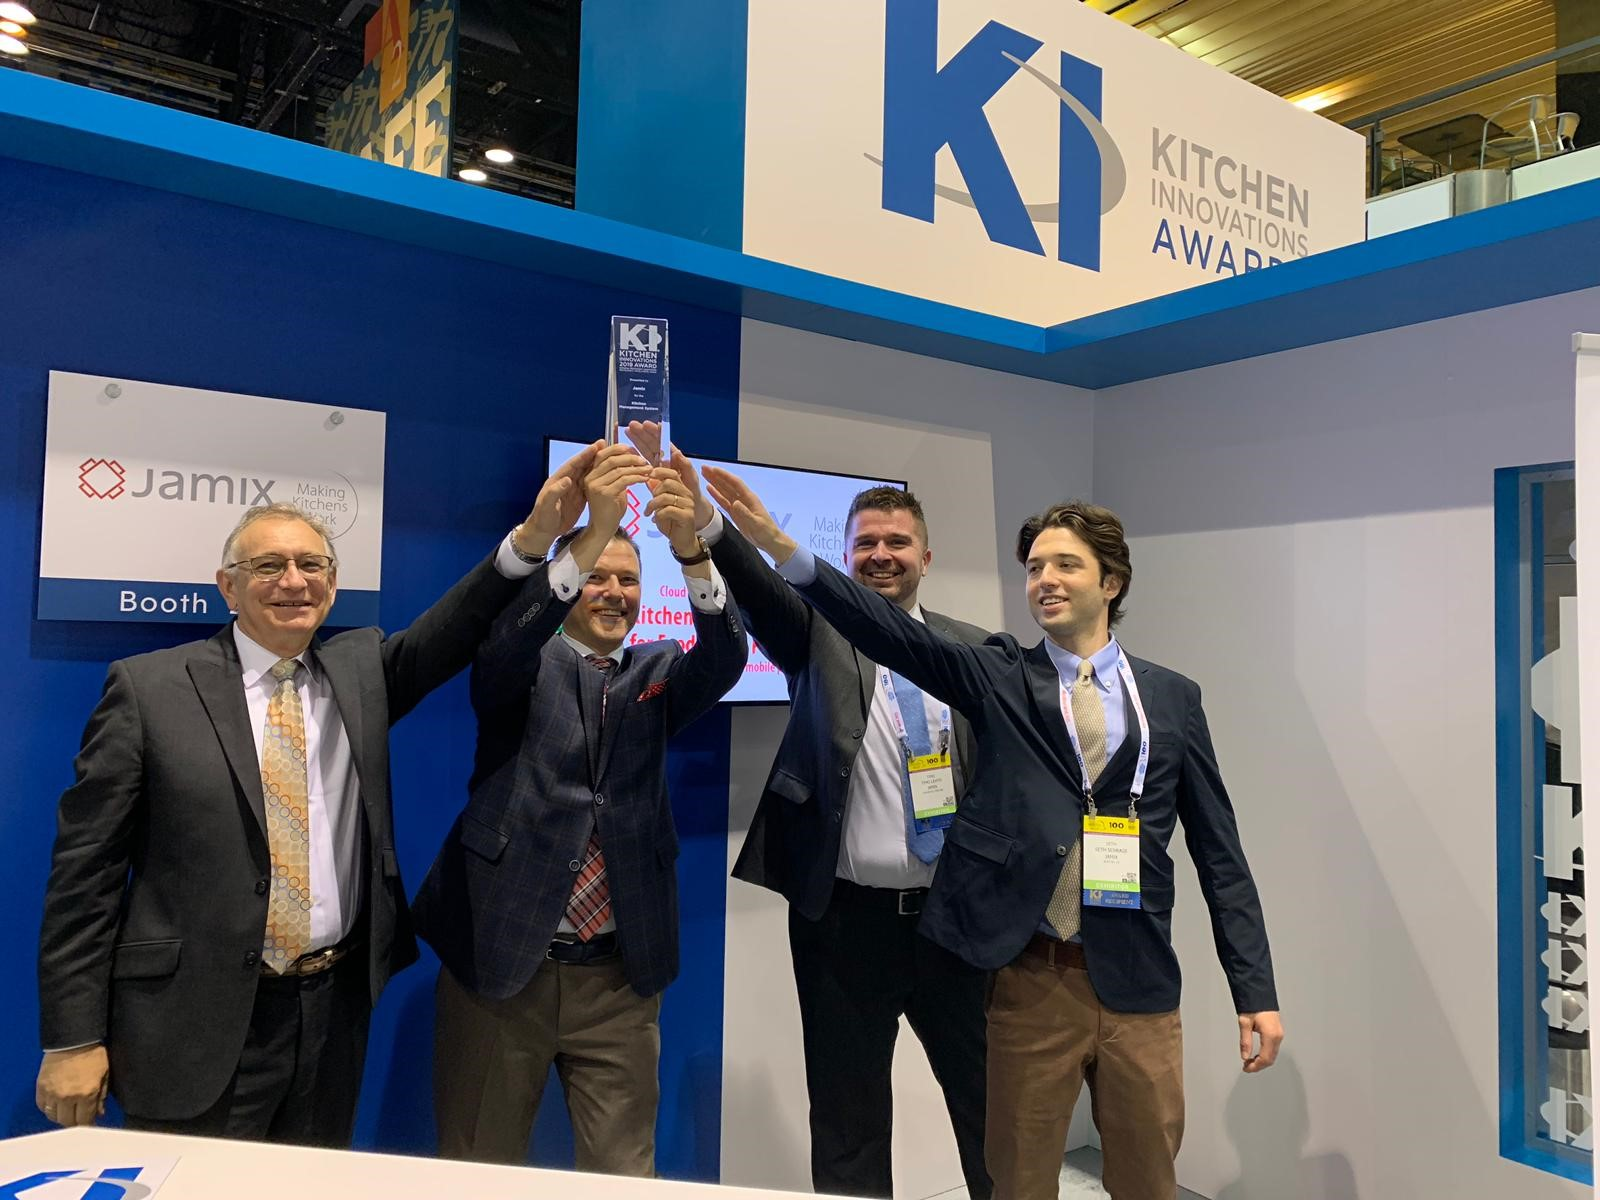 JAMIX Team at the National Restaurant Association Show 2019 celebrating the Kitchen Innovations Award